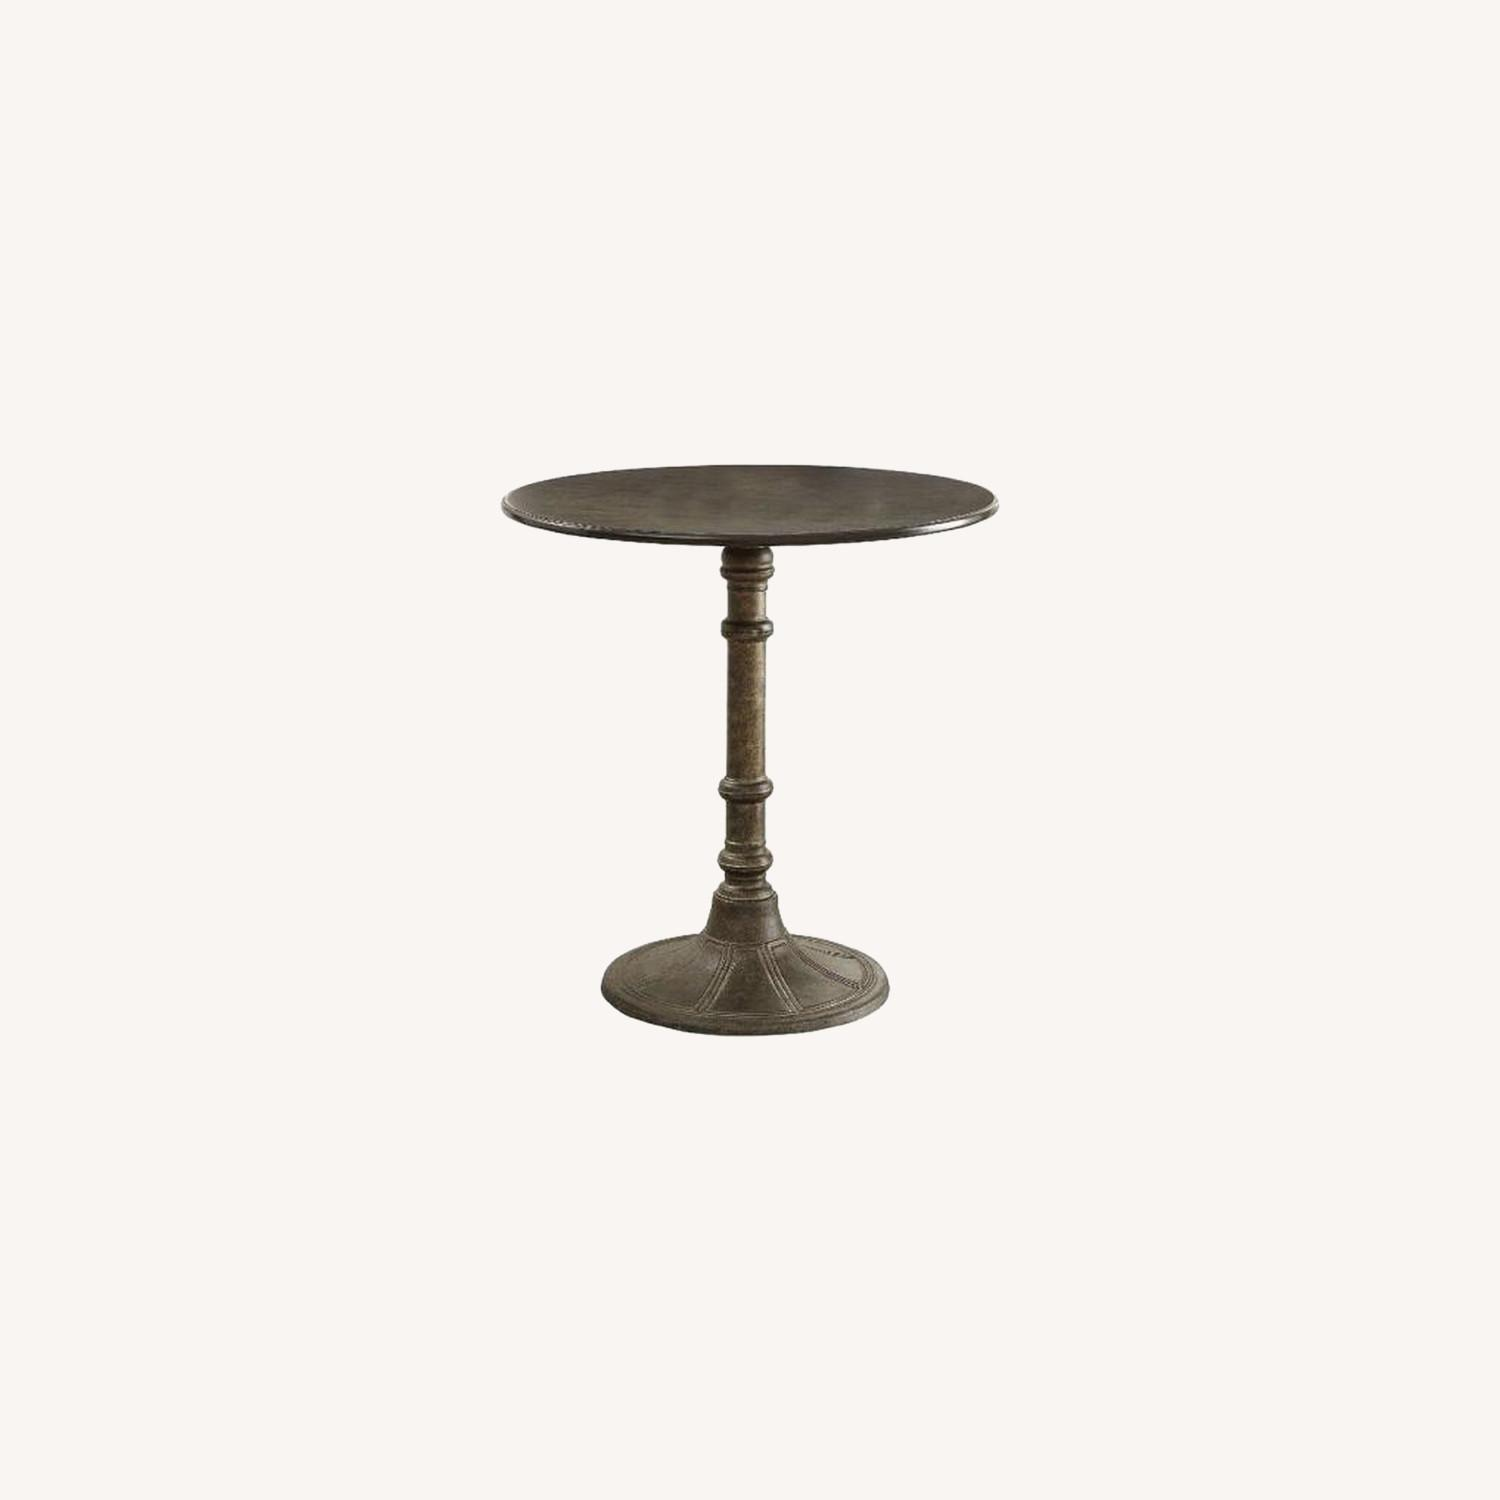 Beautiful Dining Table In Antique Bronze Finish - image-3